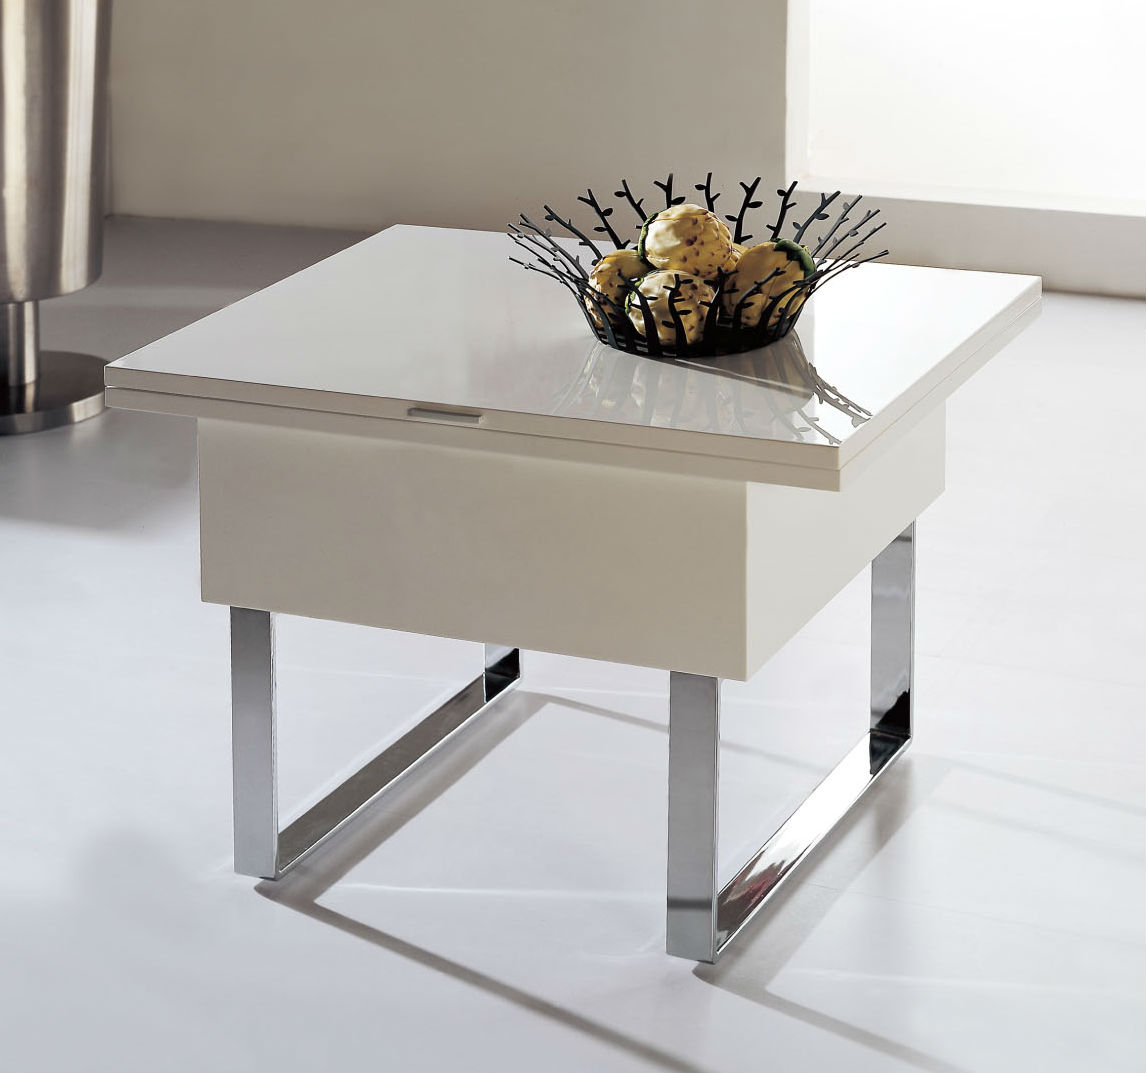 Space Saving Table Sold By